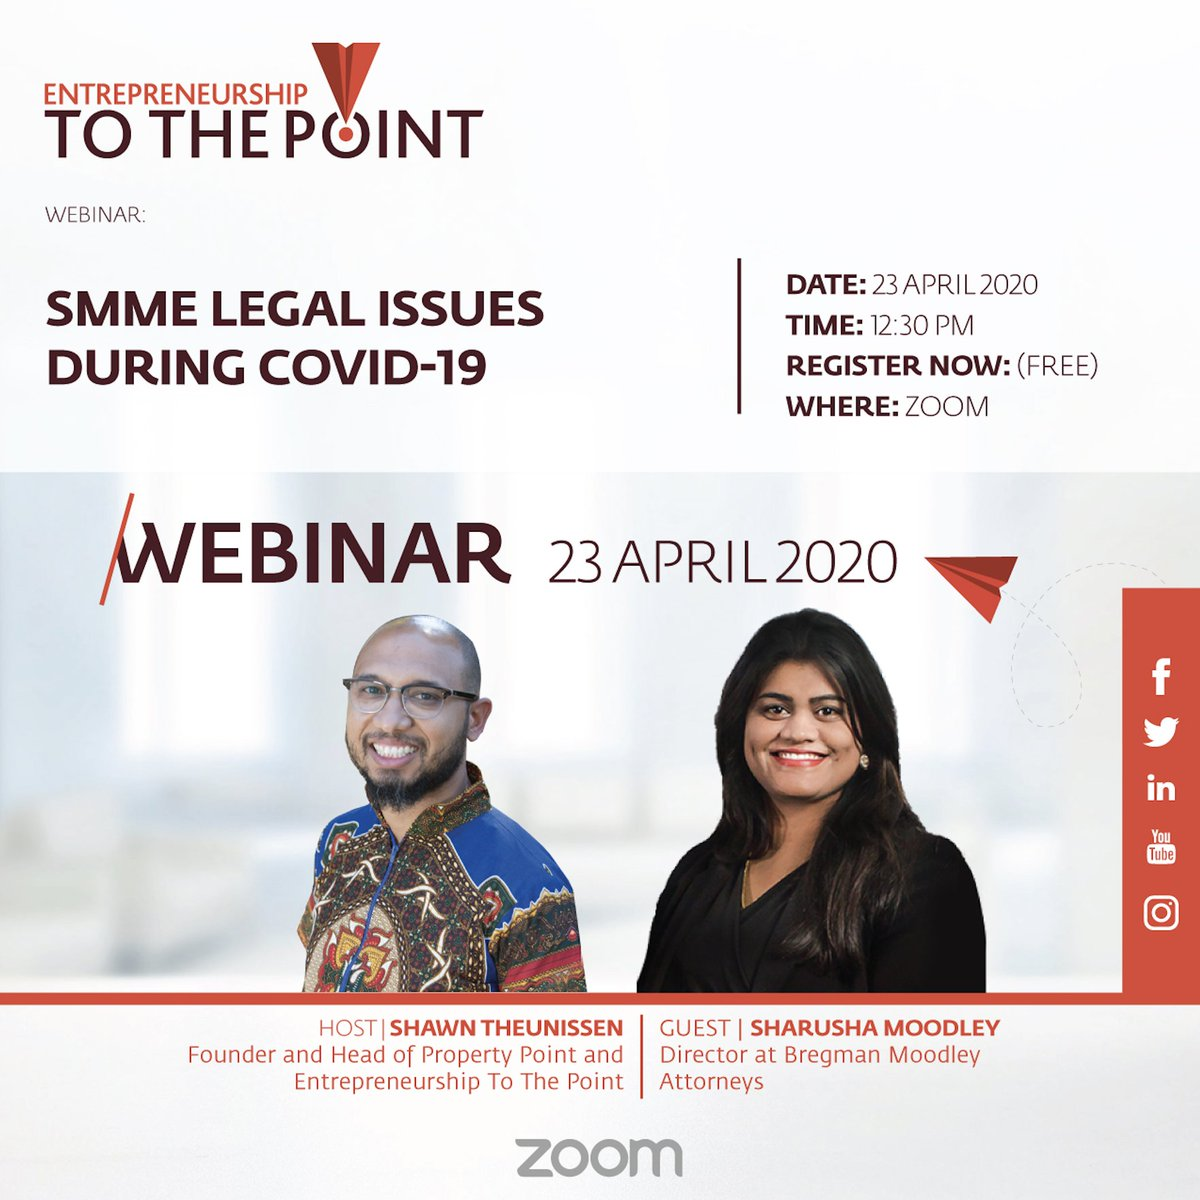 Are you battling with questions around legal issues during this COVID-19 lockdown period? Join @eToThePoint at 12:30 today for an interactive session on legal issues facing SMME's during this time register via this link https://t.co/wYDVTcpP84 https://t.co/FpoJB66YCb